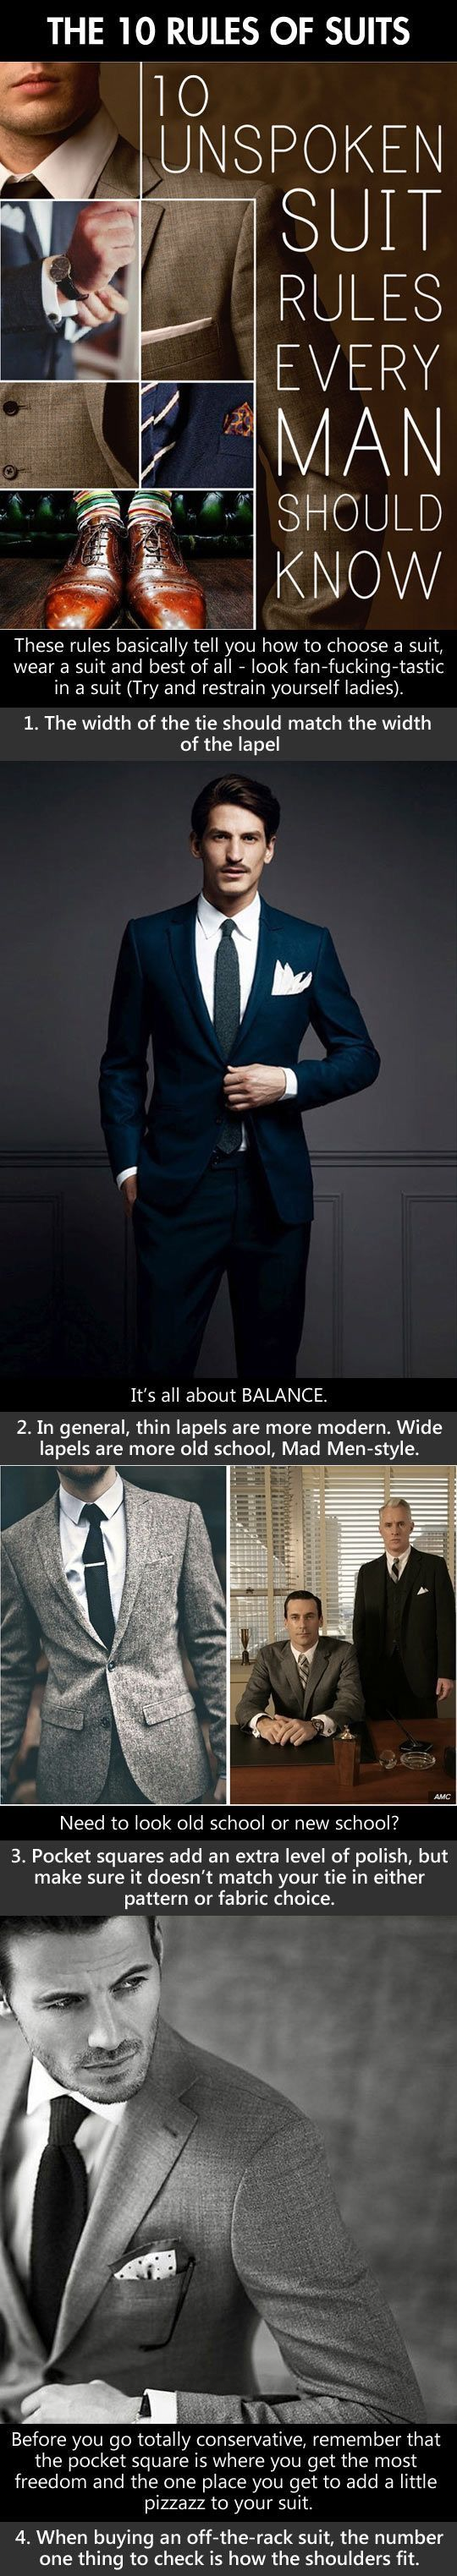 The 10 rules of suit.